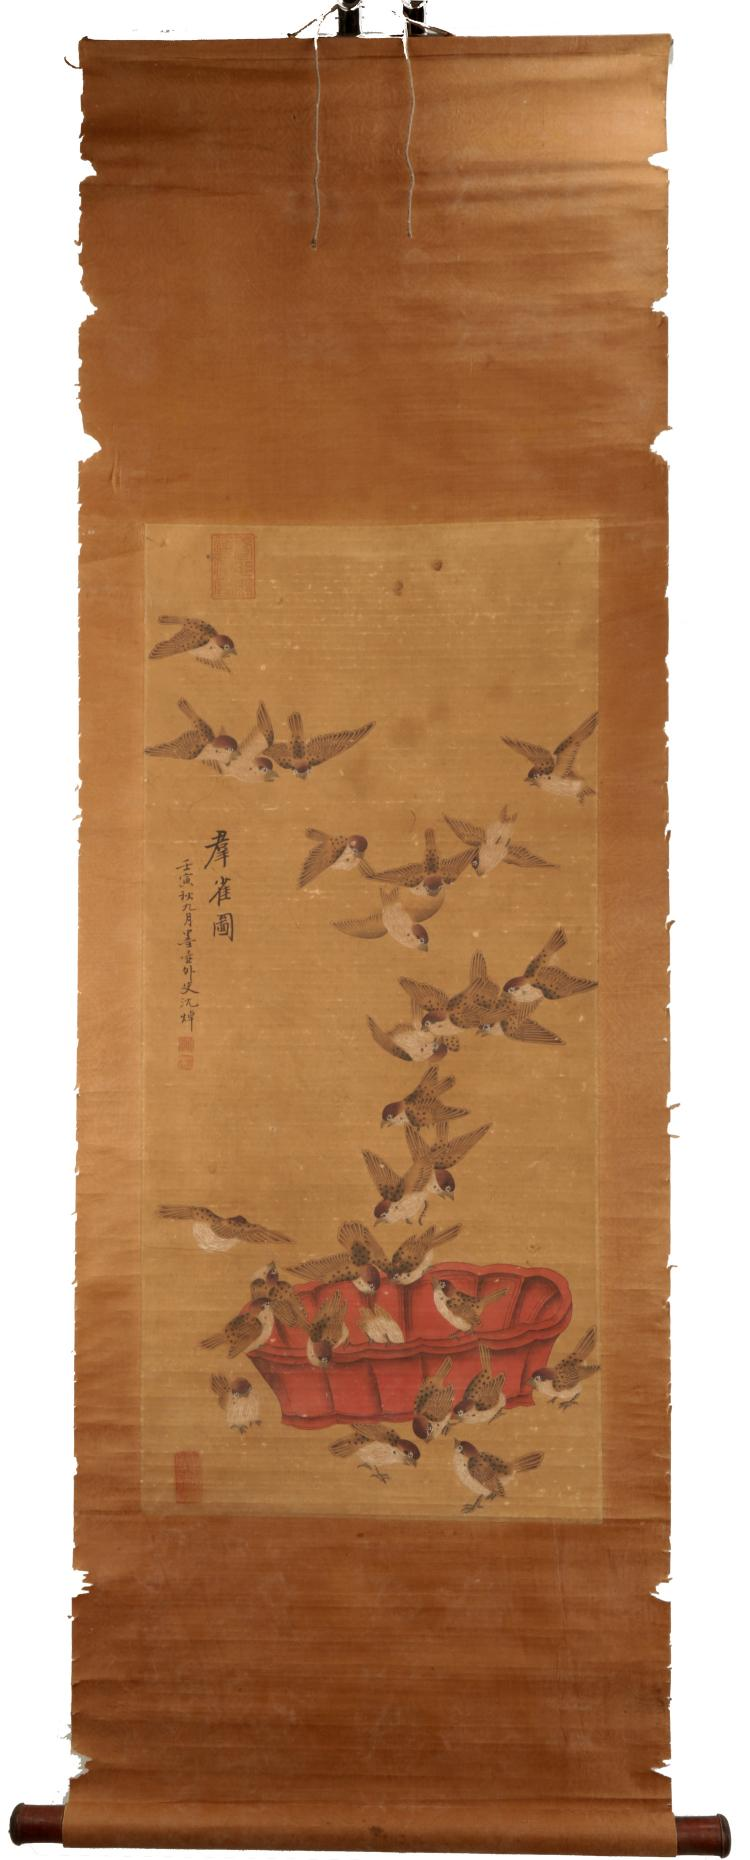 ATTRIBUTED AND SIGNED SHENG ZUO (1850-?). A INK AND